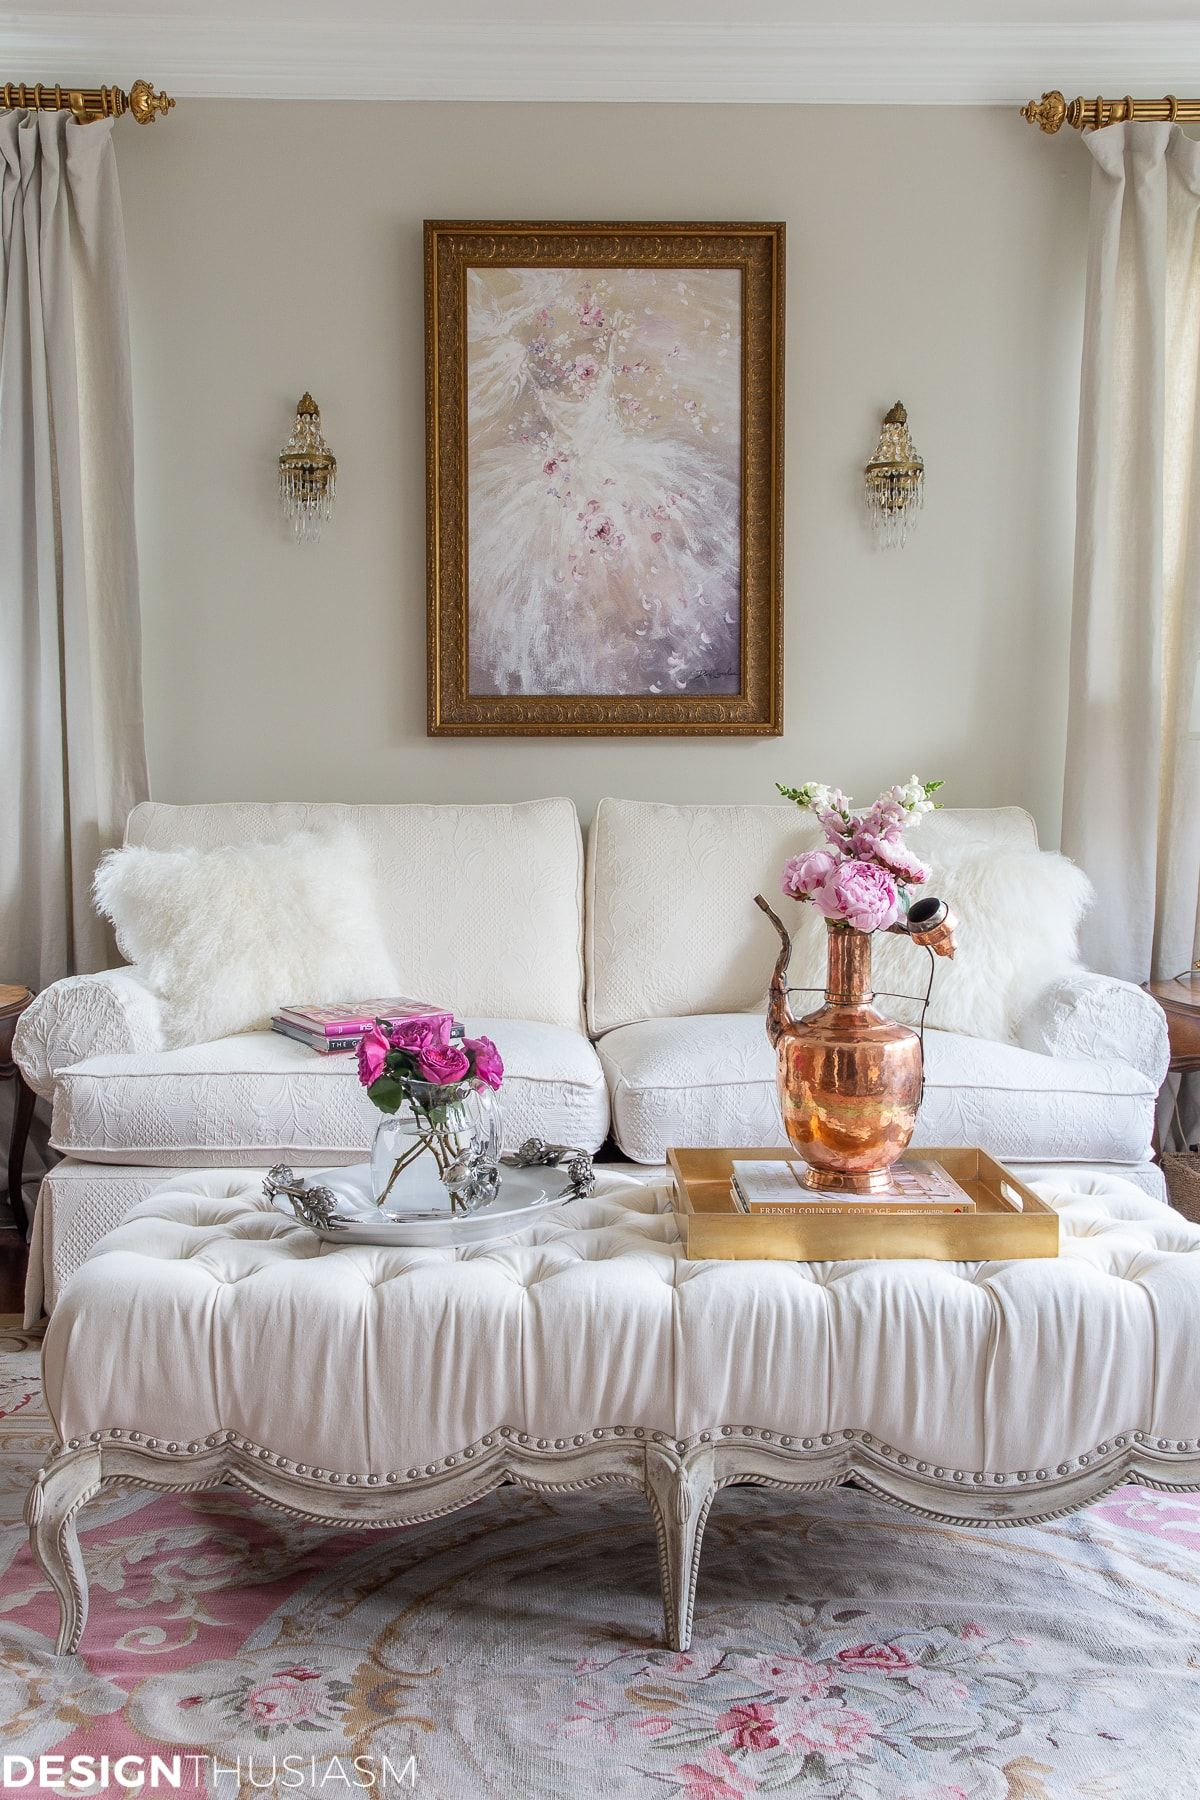 Adding Warmth To Your Living Room Decor With Pink And Copper Accents Copper Decor Living Room French Country Decorating French Country Living Room #pink #decorations #for #living #room